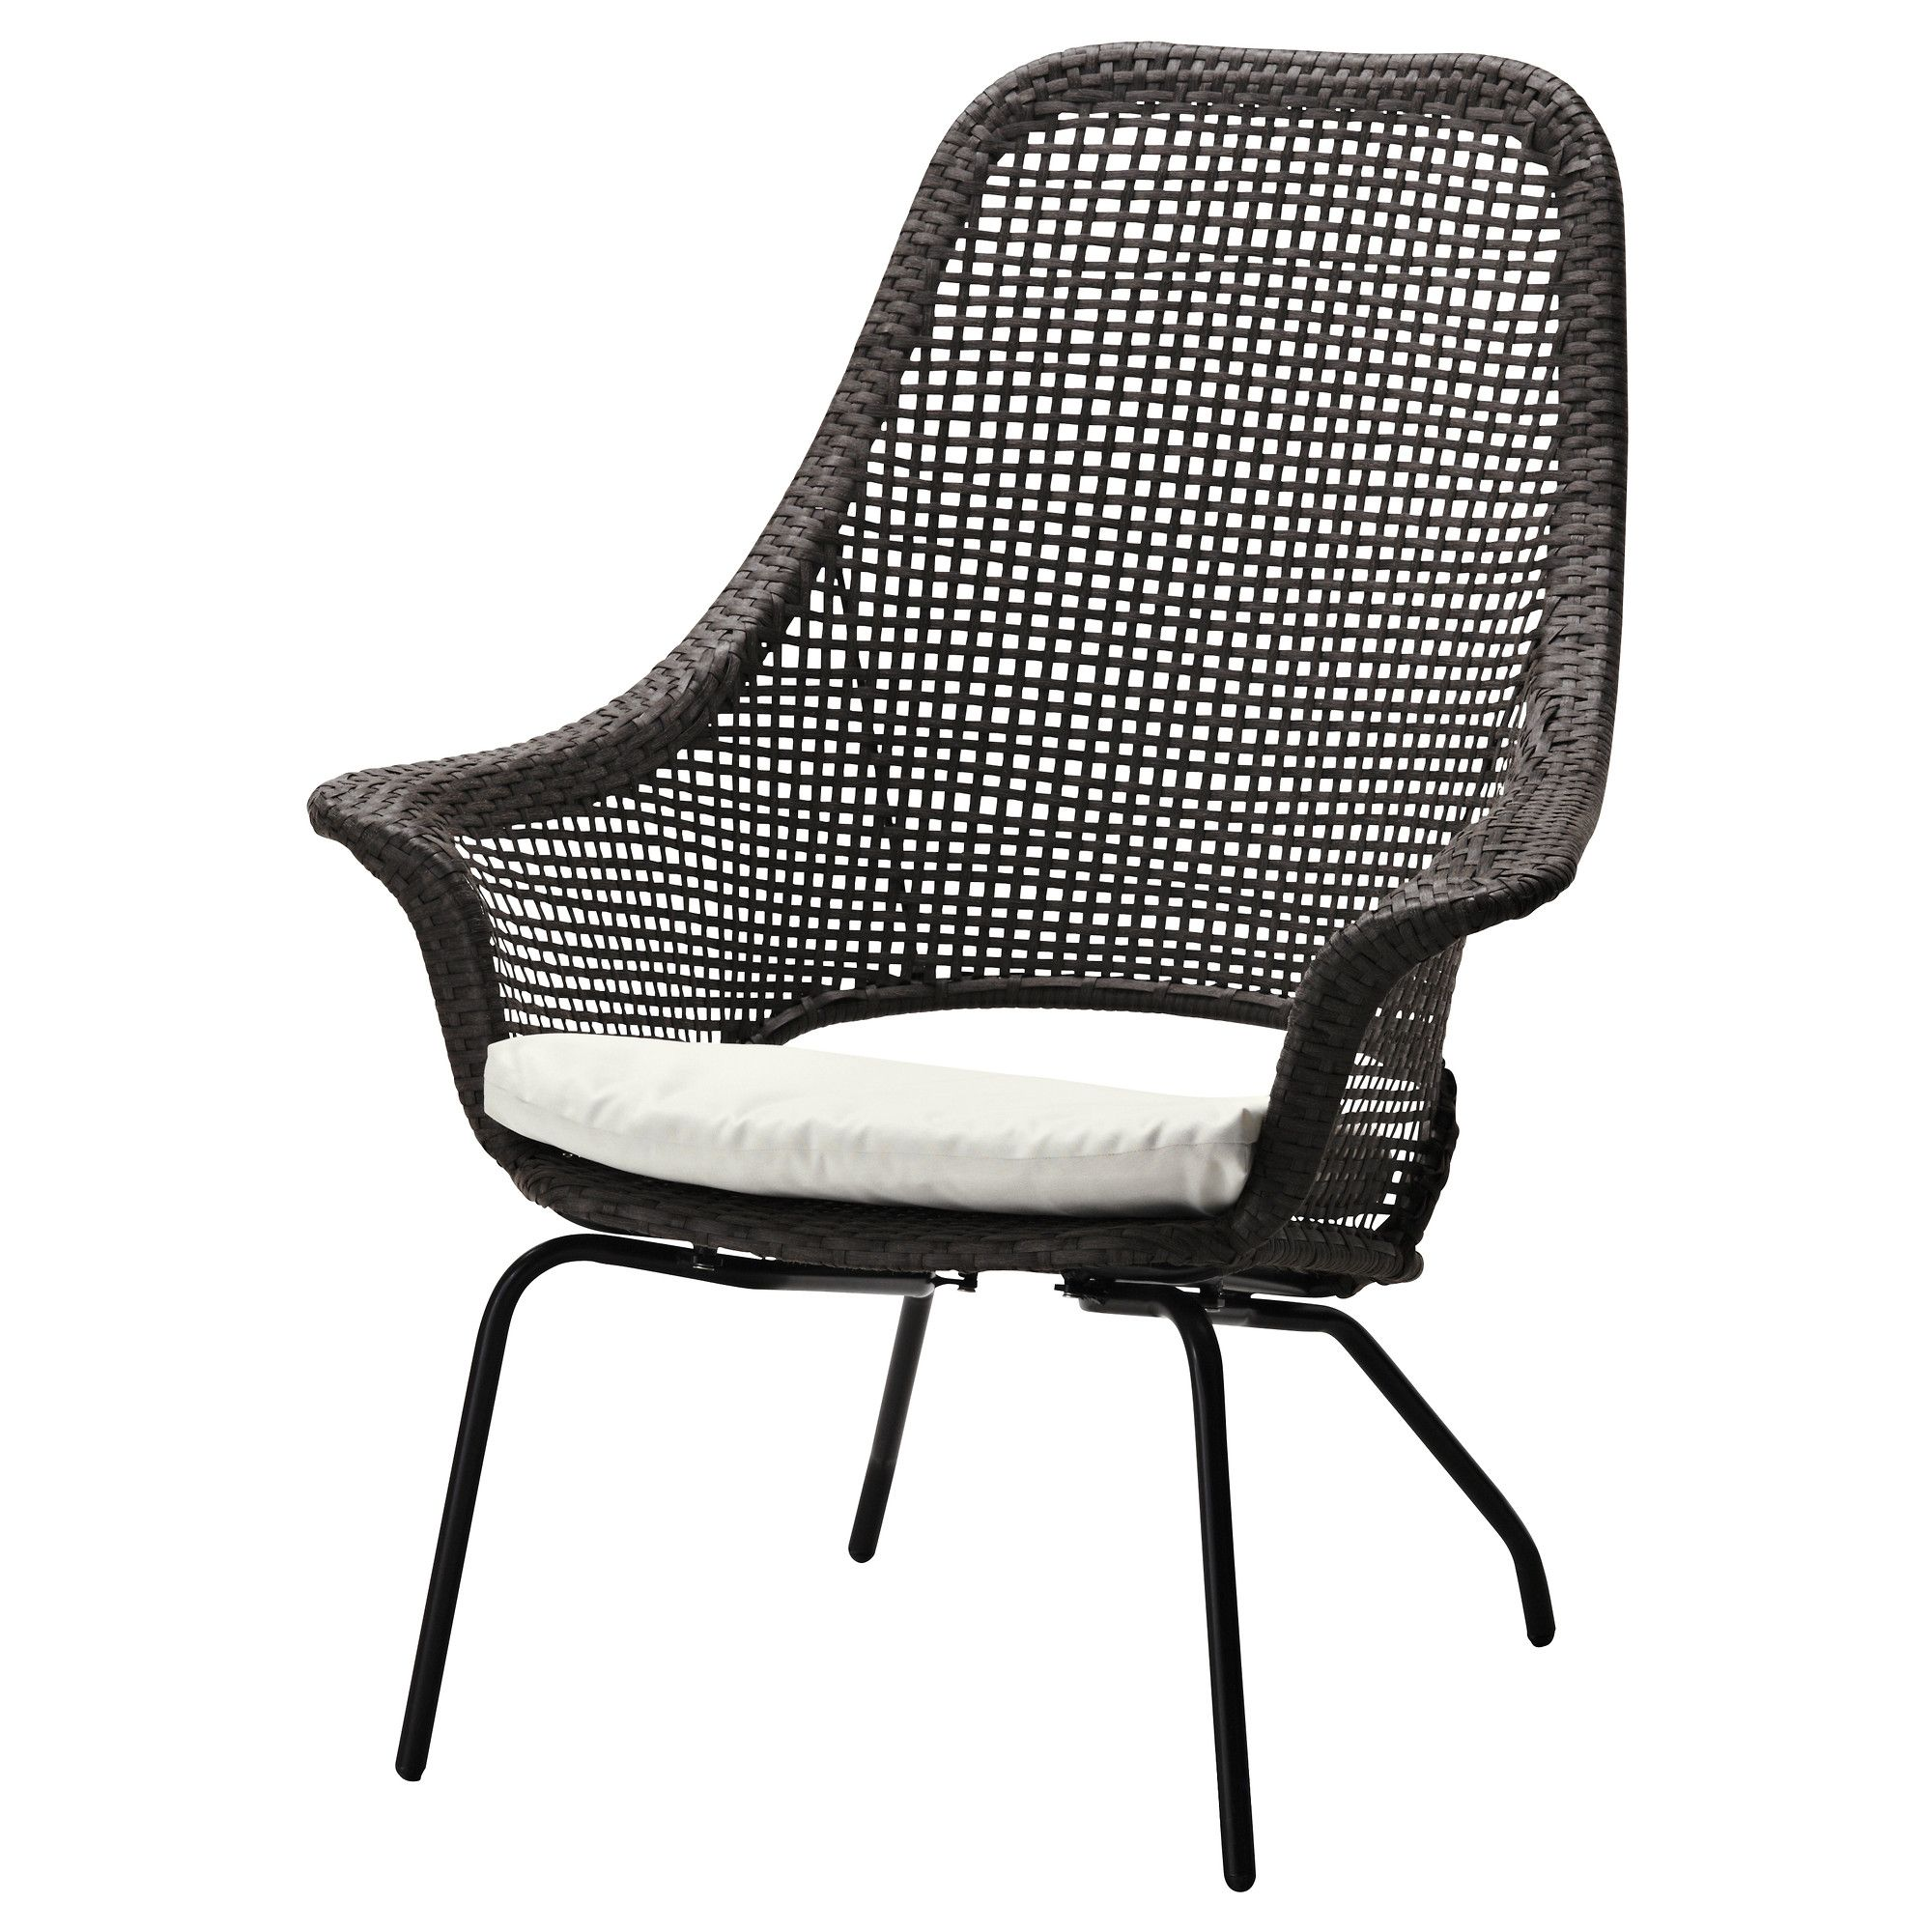 H–GSTEN Armchair IKEA Hand woven plastic rattan offers the same look as natural rattan but is more durable for outdoor use Pinterest